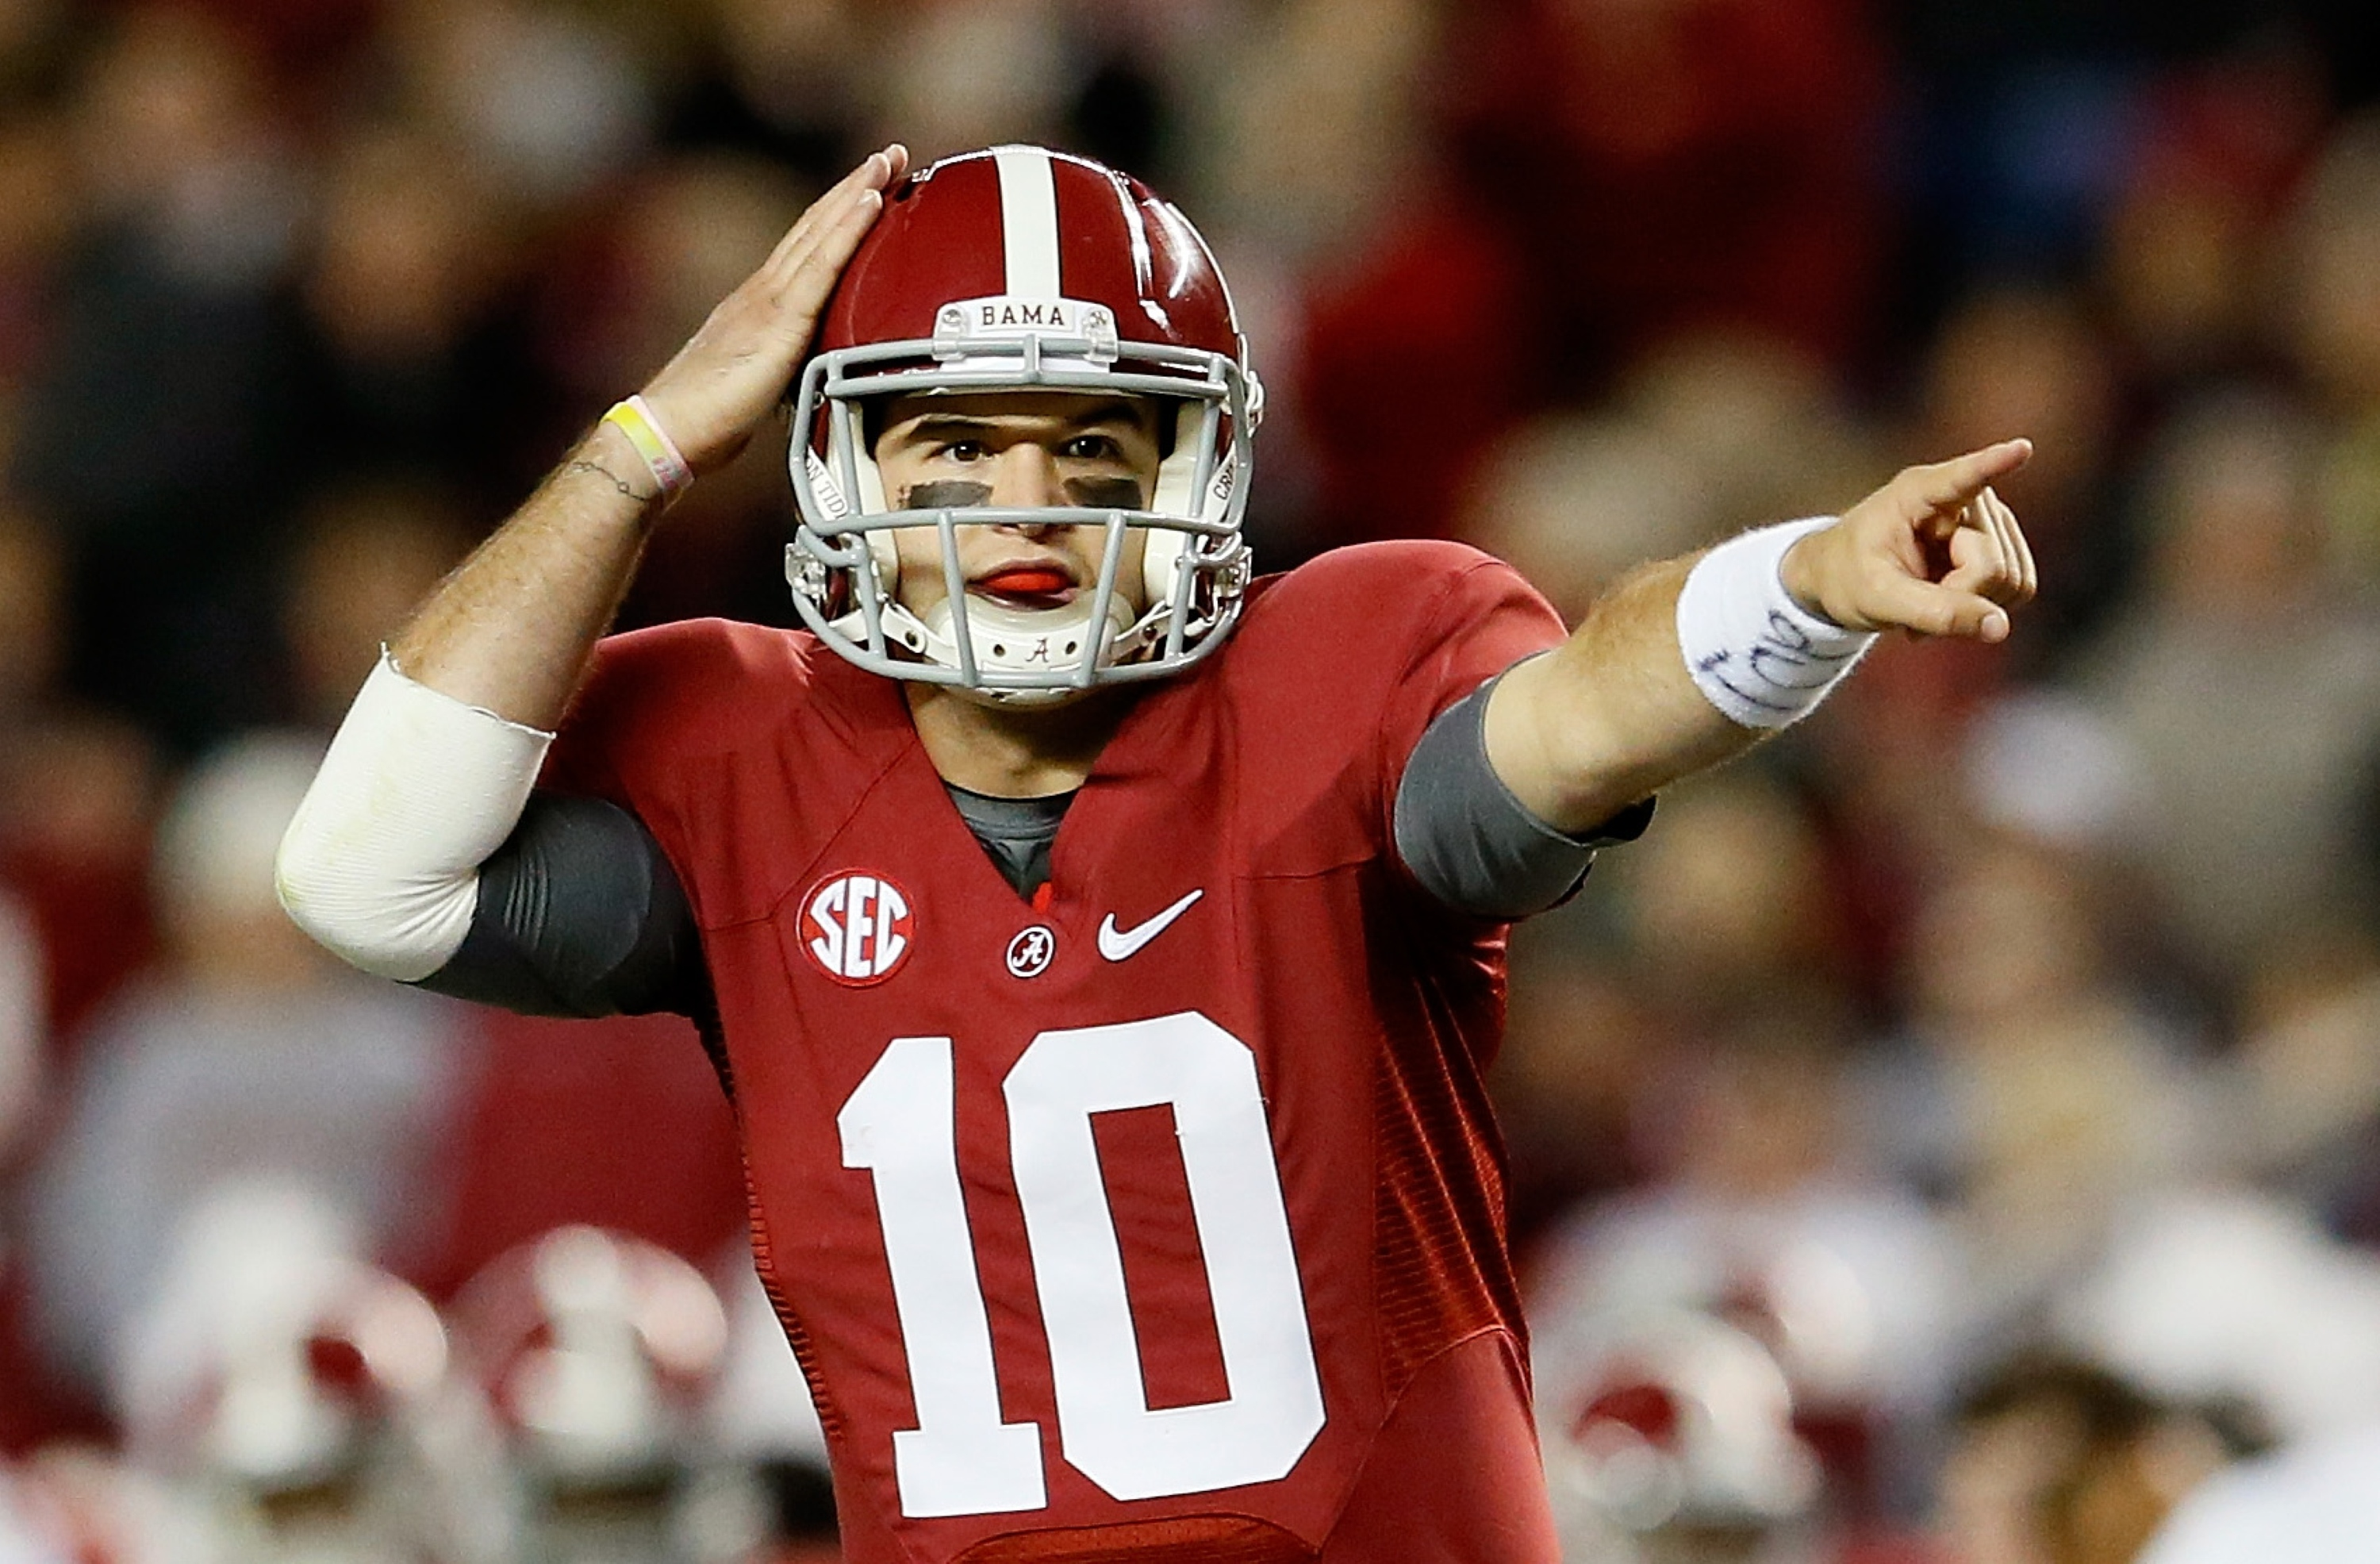 Alabama QB AJ McCarron has vaulted into Heisman contention due to his team's success. (Getty)